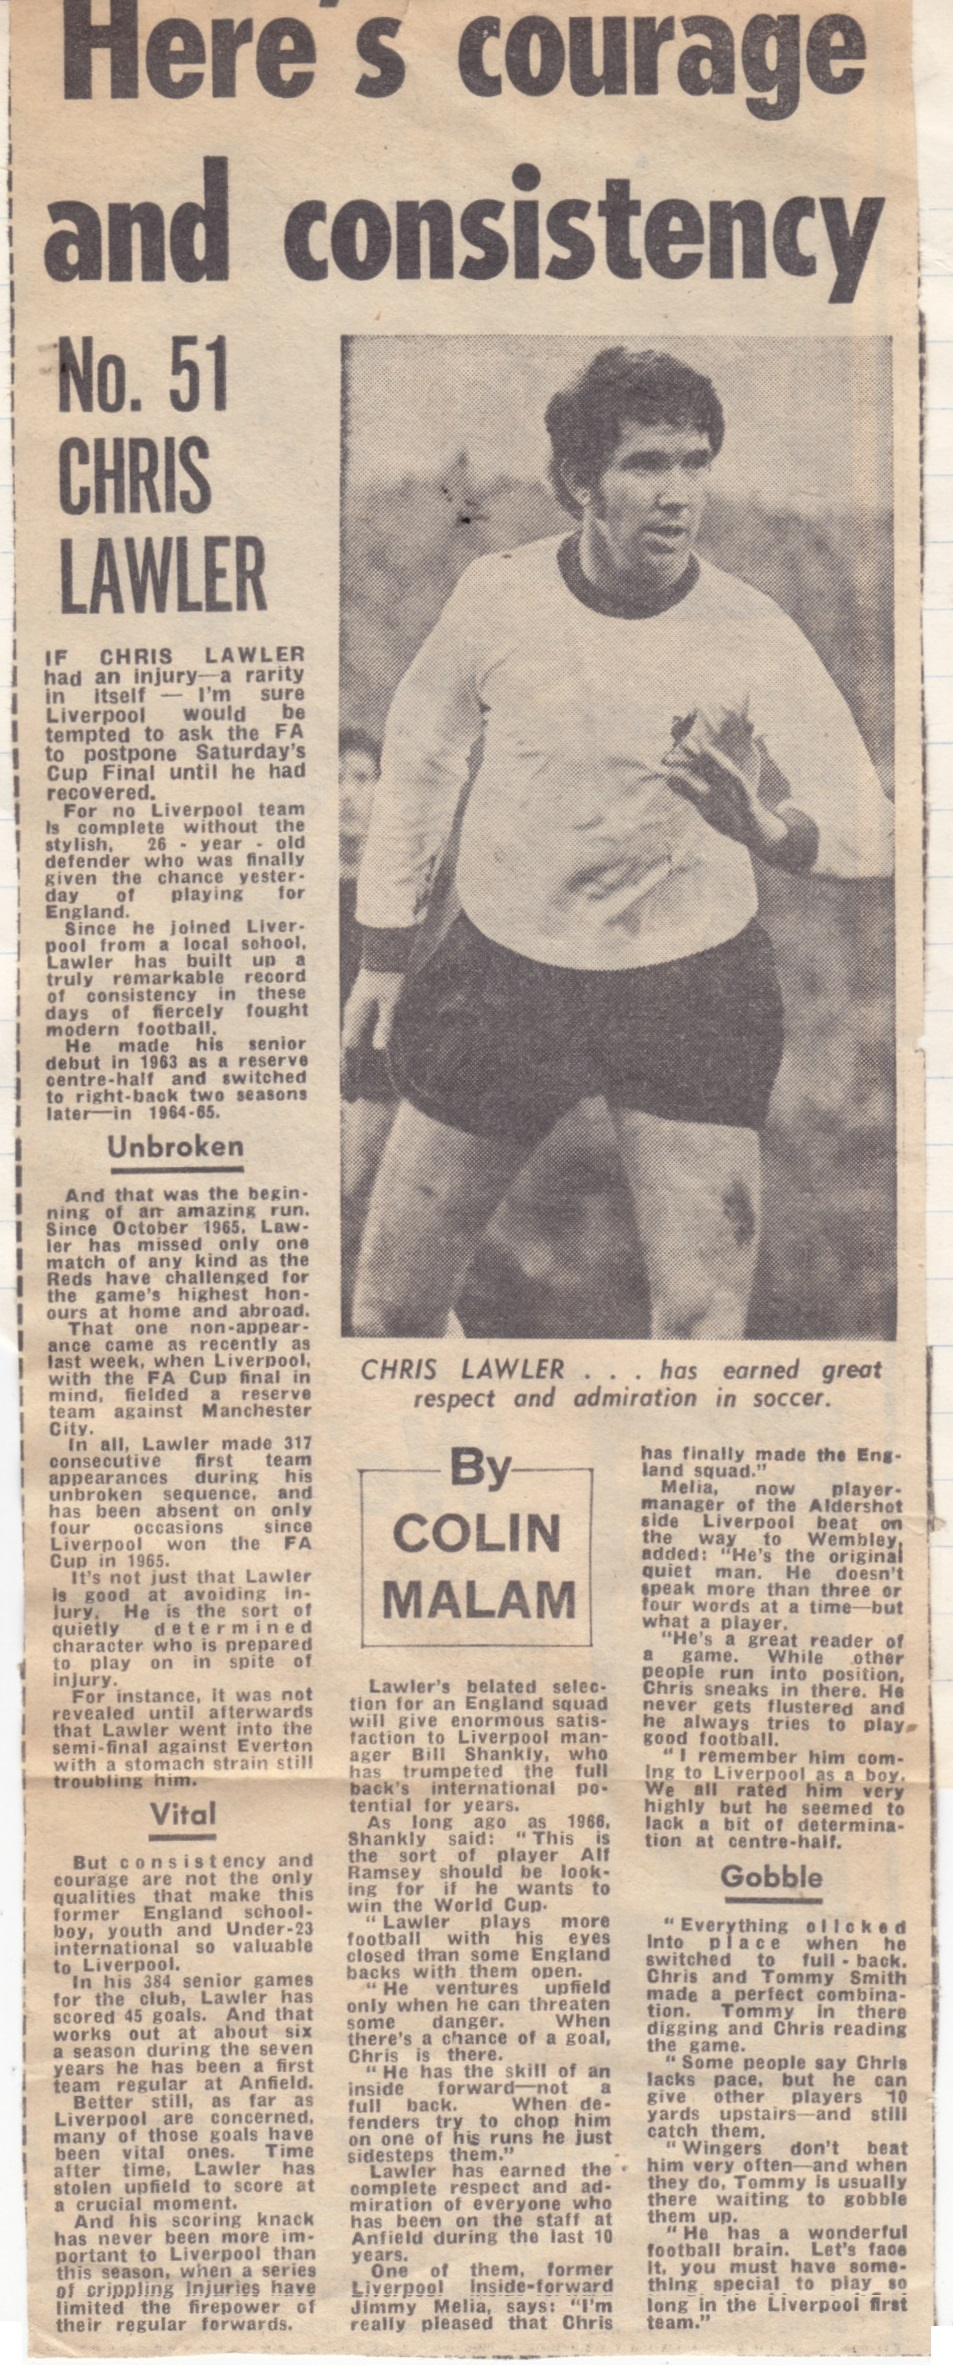 Consistency and courage the hallmarks of Lawler - profile prior to the 1971 final